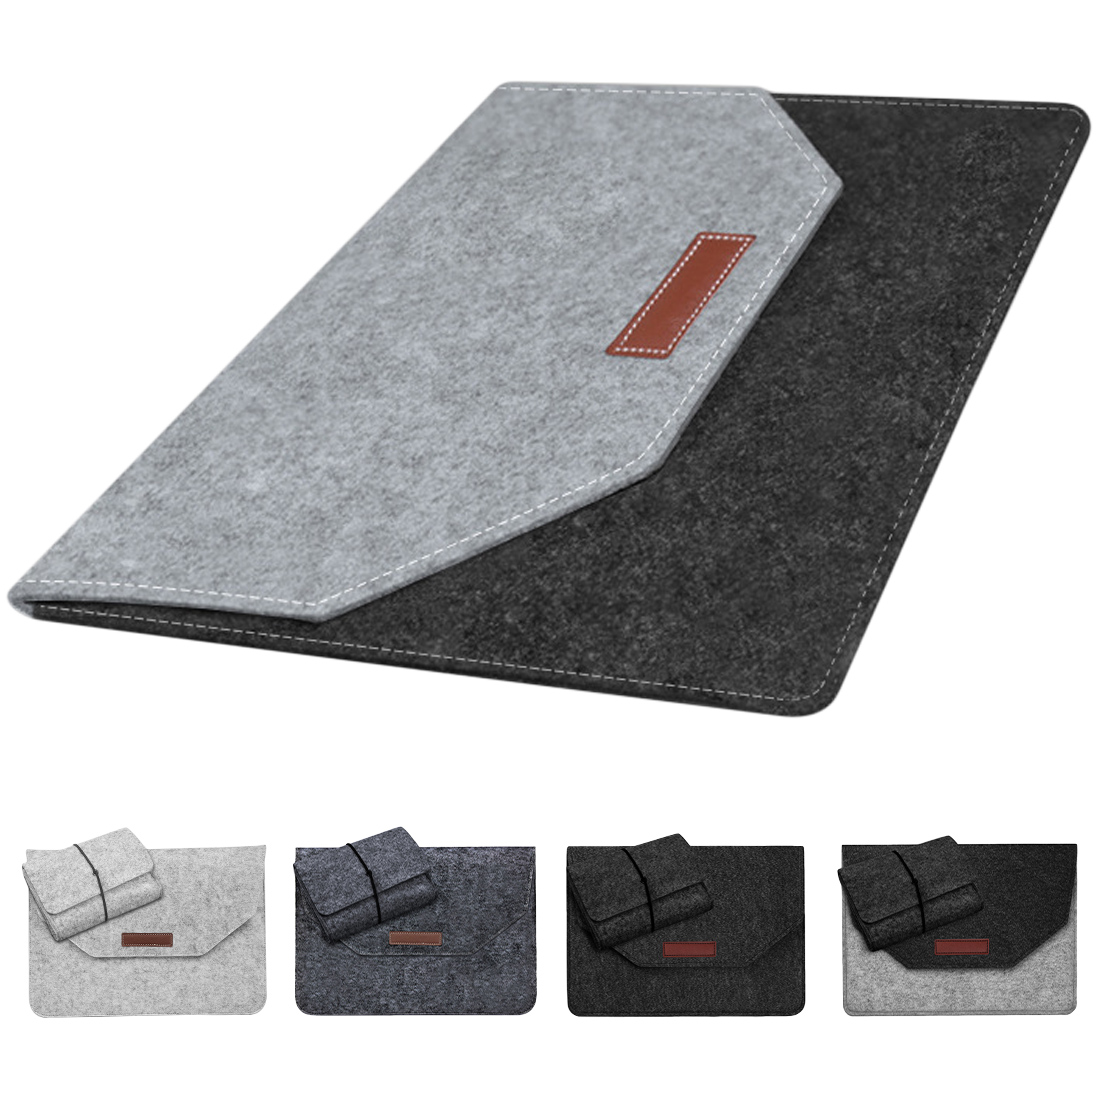 High Quality Soft Bussiness Wood Felt Sleeve Bag Case For Apple Macbook Air Pro Retina 11 13 15 Laptop for Mac book 13.3 inch